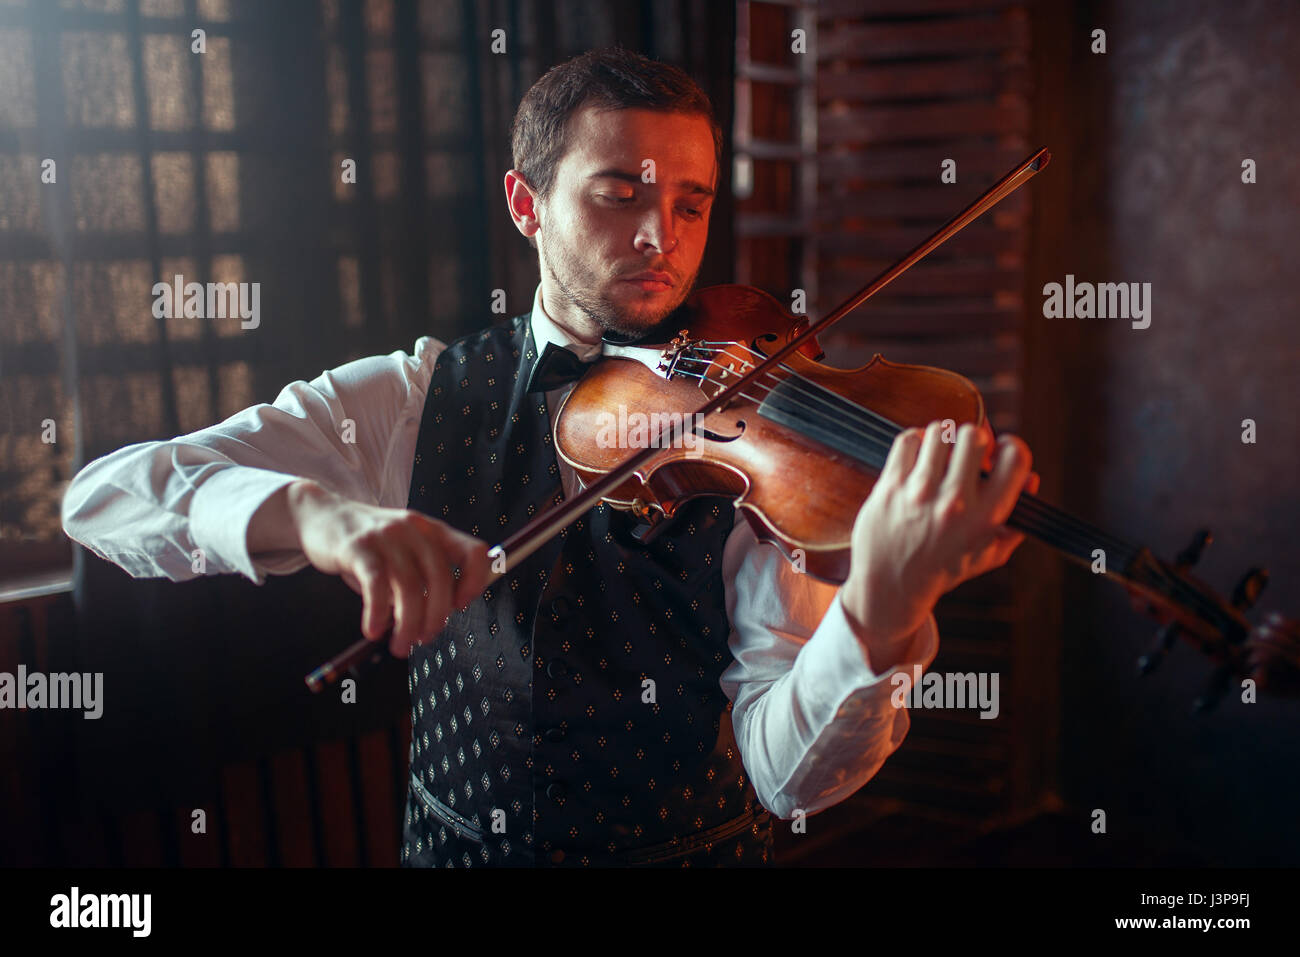 Male violinist playing classical music on violin. Fiddler man with musical instrument - Stock Image